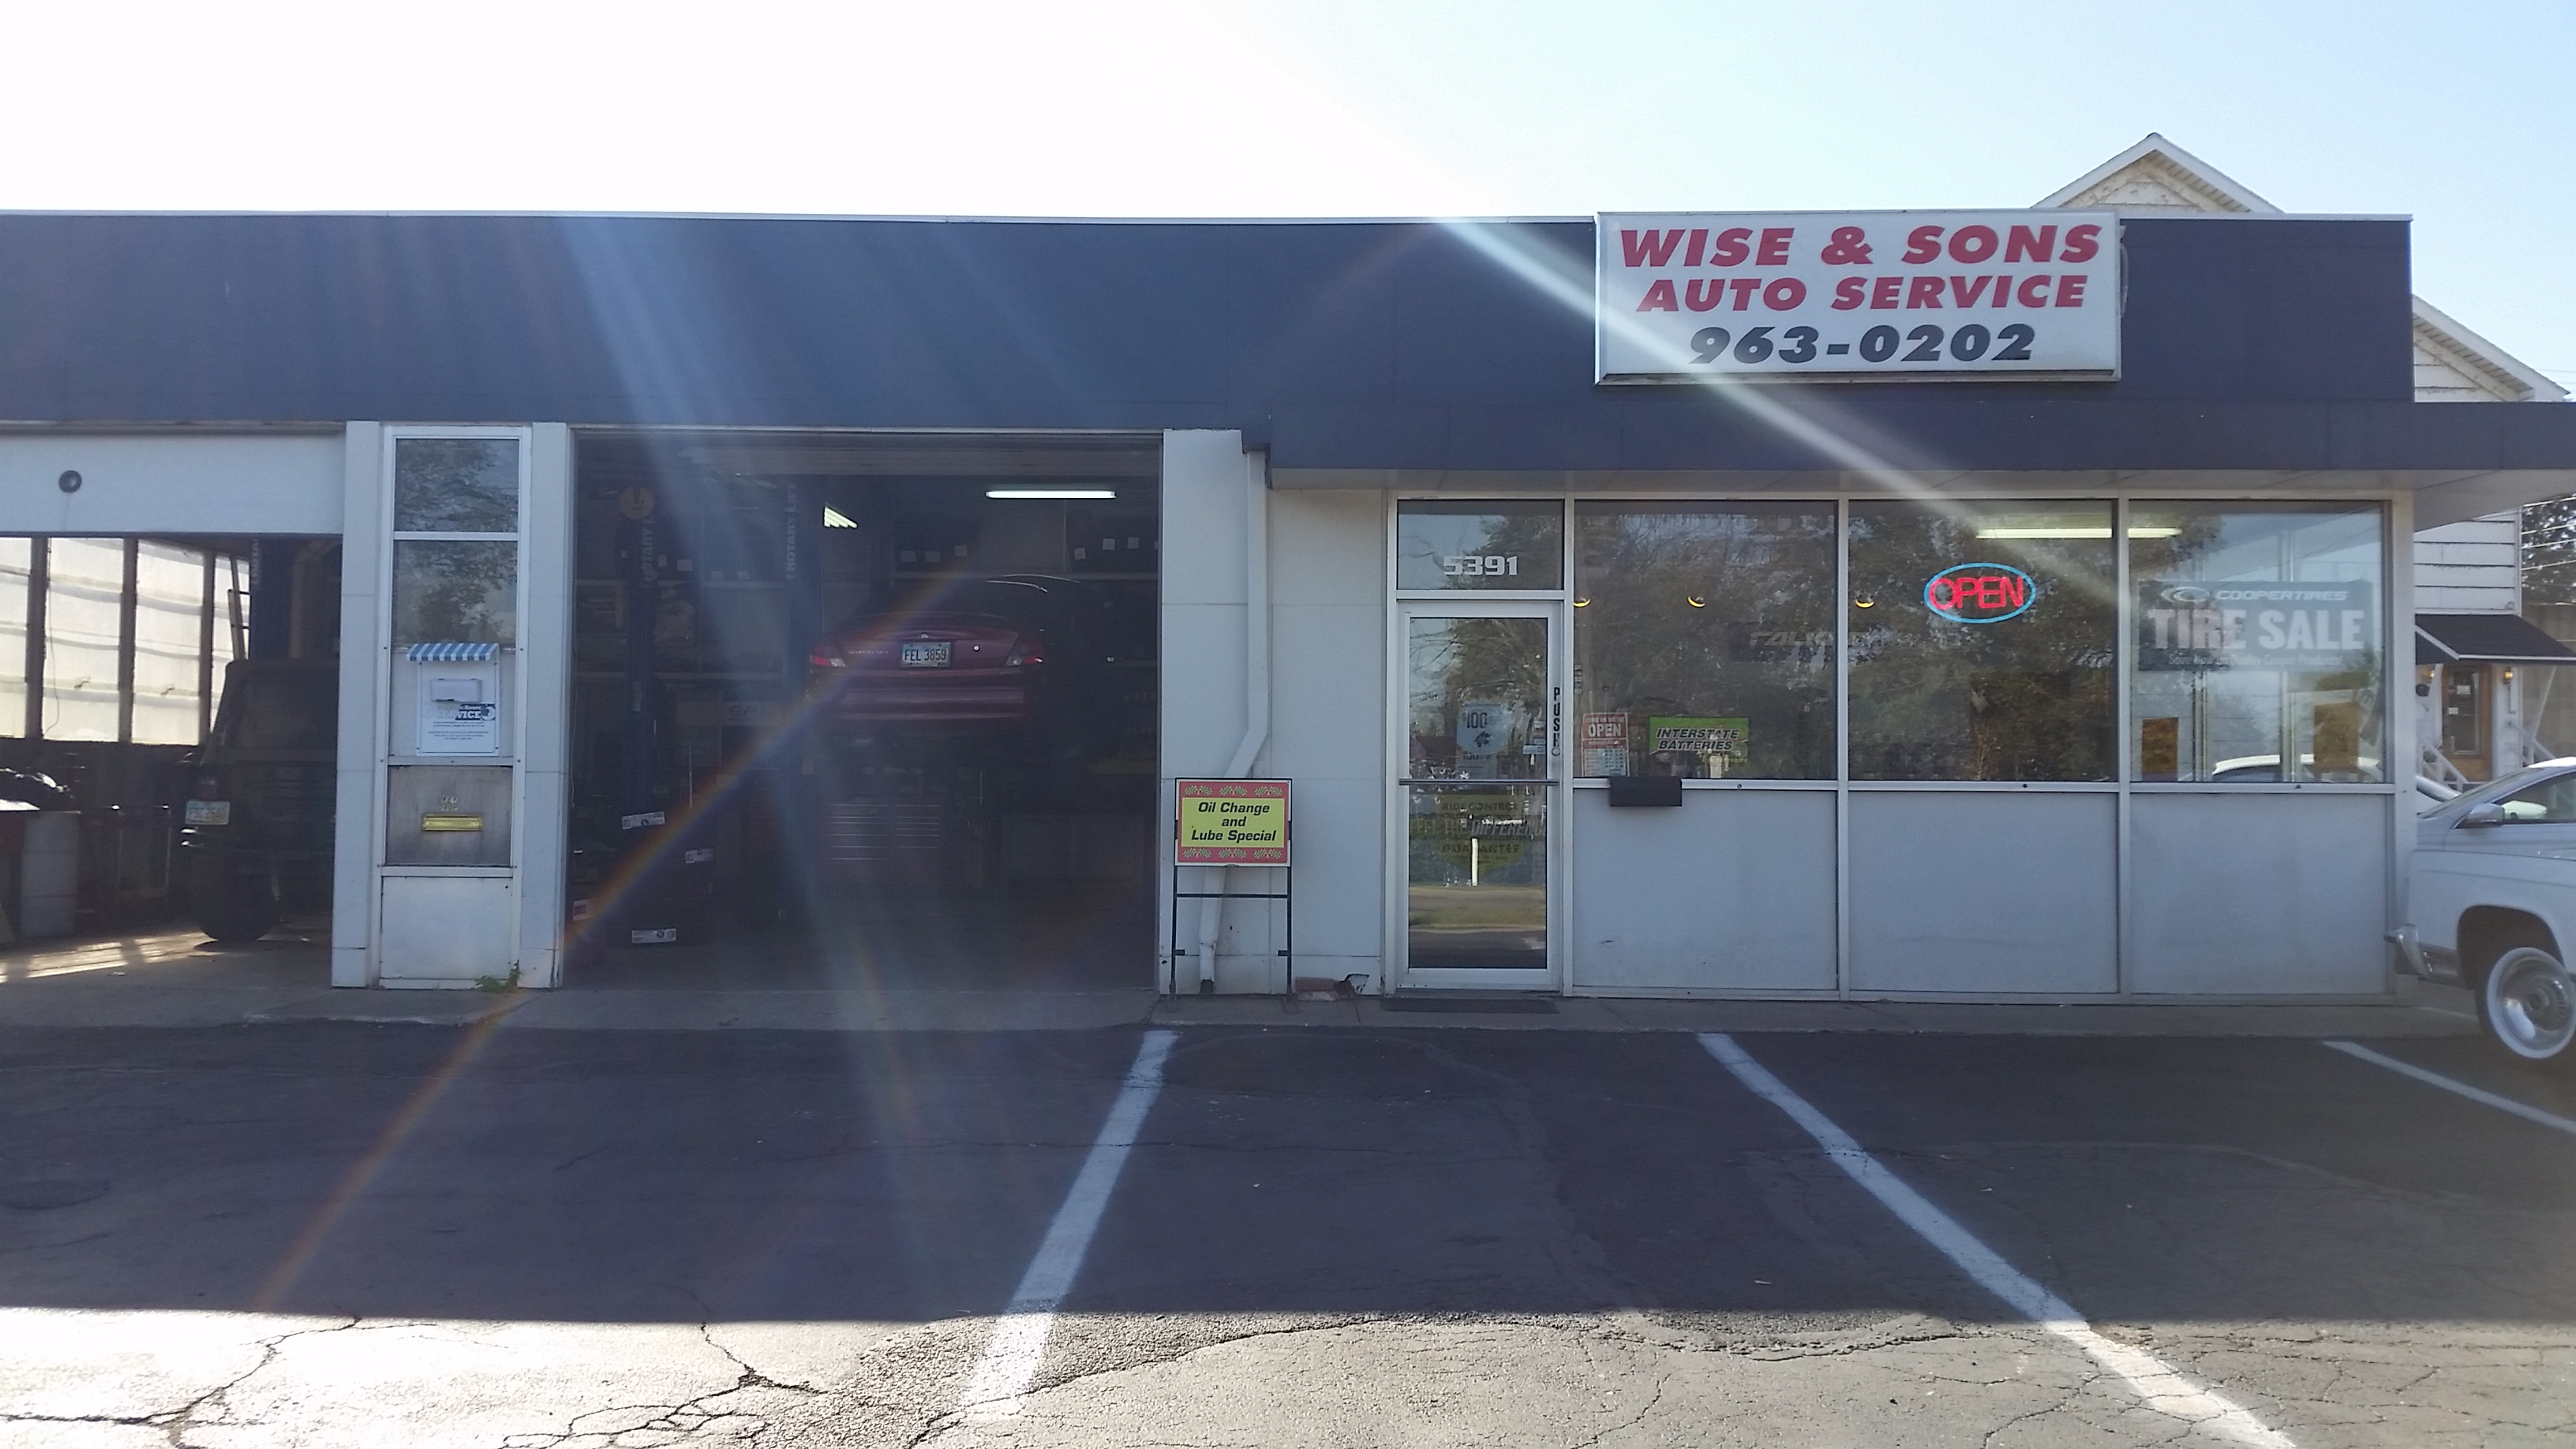 Wise and Sons Auto Service